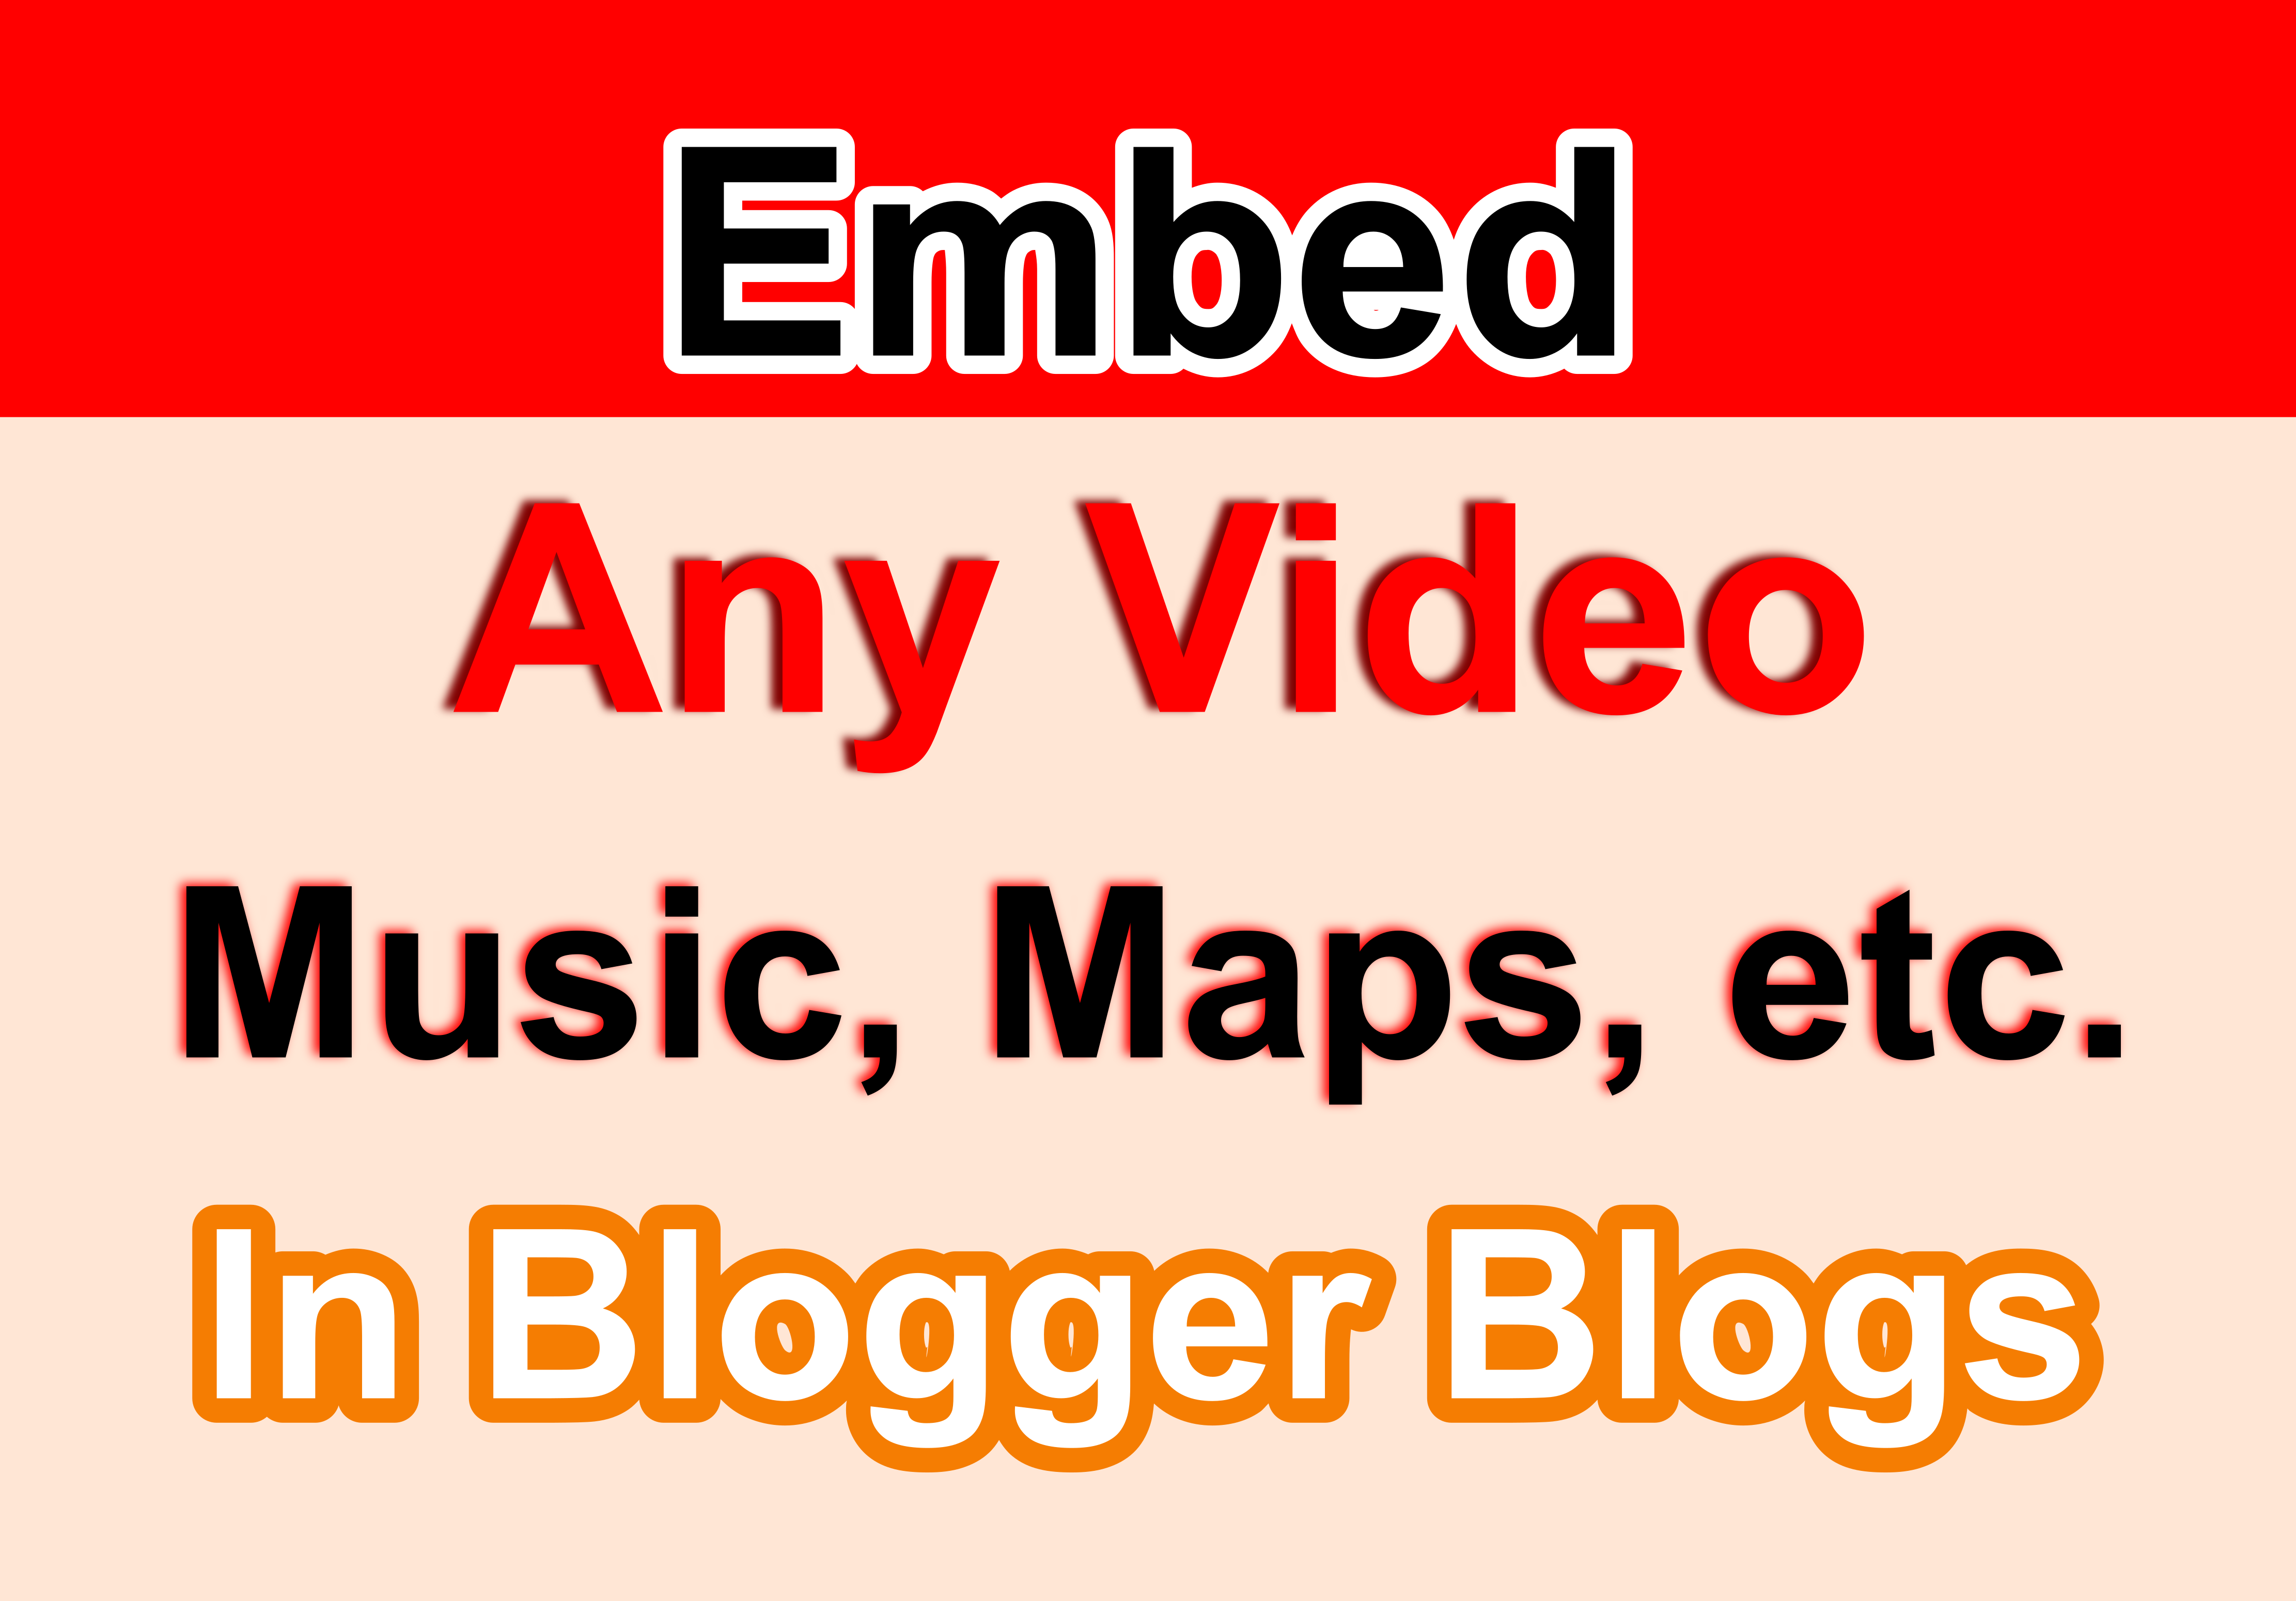 Manually submit to embed your video in 15+ blogger blogs